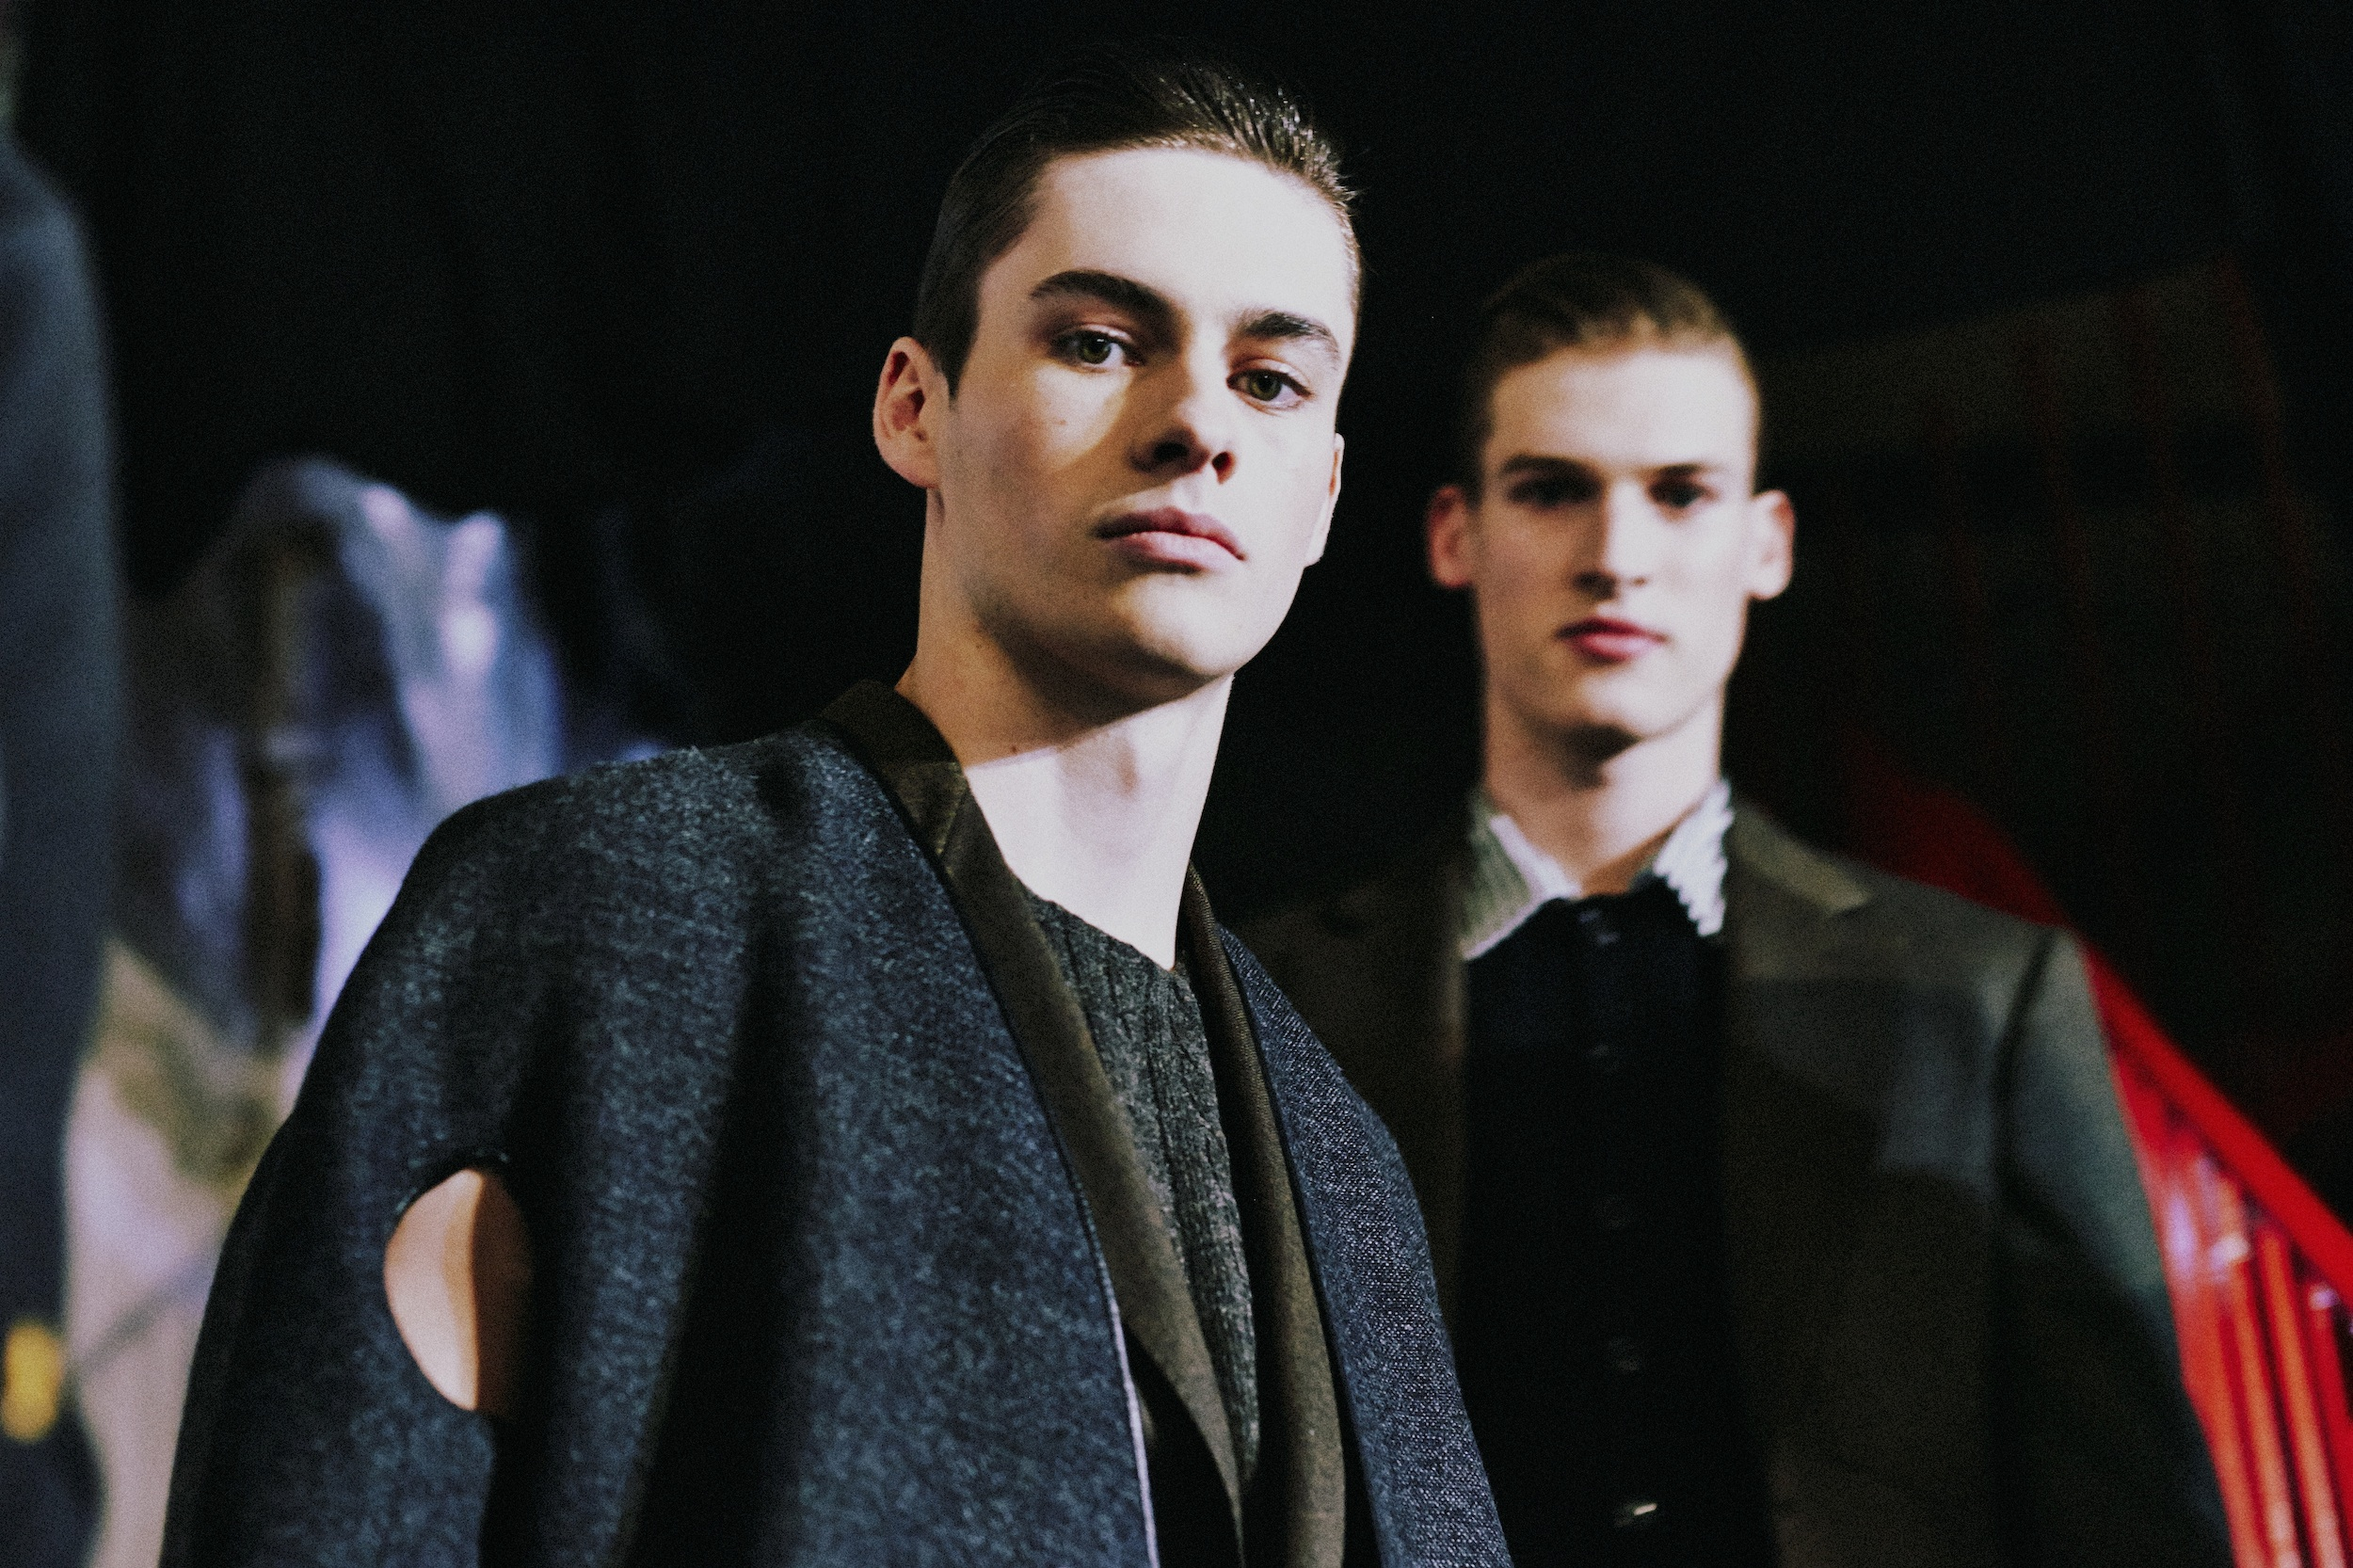 1 LCM AW14 HERO MAGAZINE HARRY CARR BACKSTAGE CERUTTI FW14 CATWAL LOOK